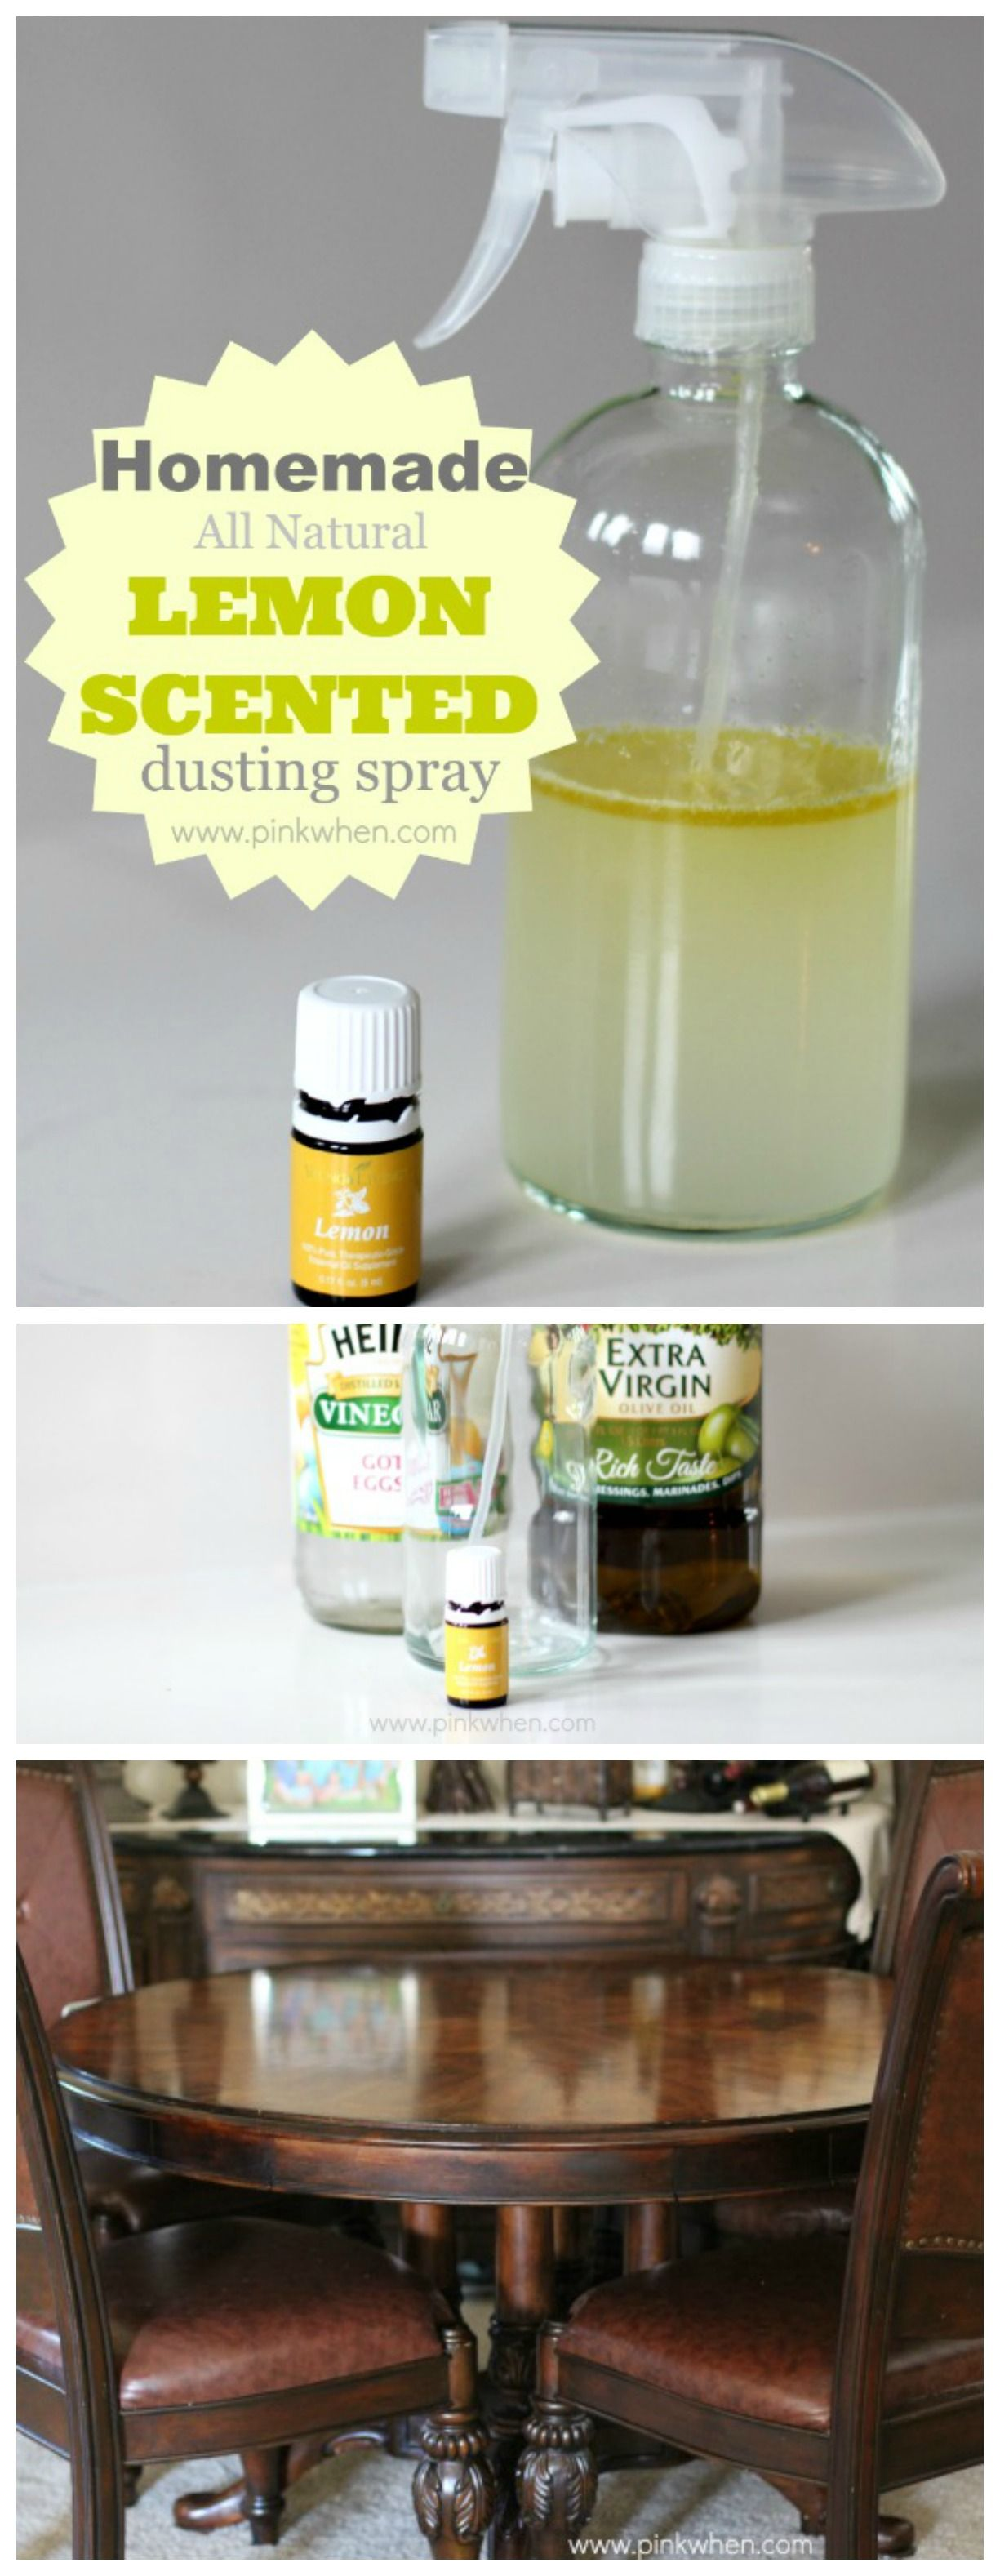 Kitchen Cabinet Cleaner Recipe Hardwood Cabinets Homemade All Natural Lemon Scented Dusting Spray Simple